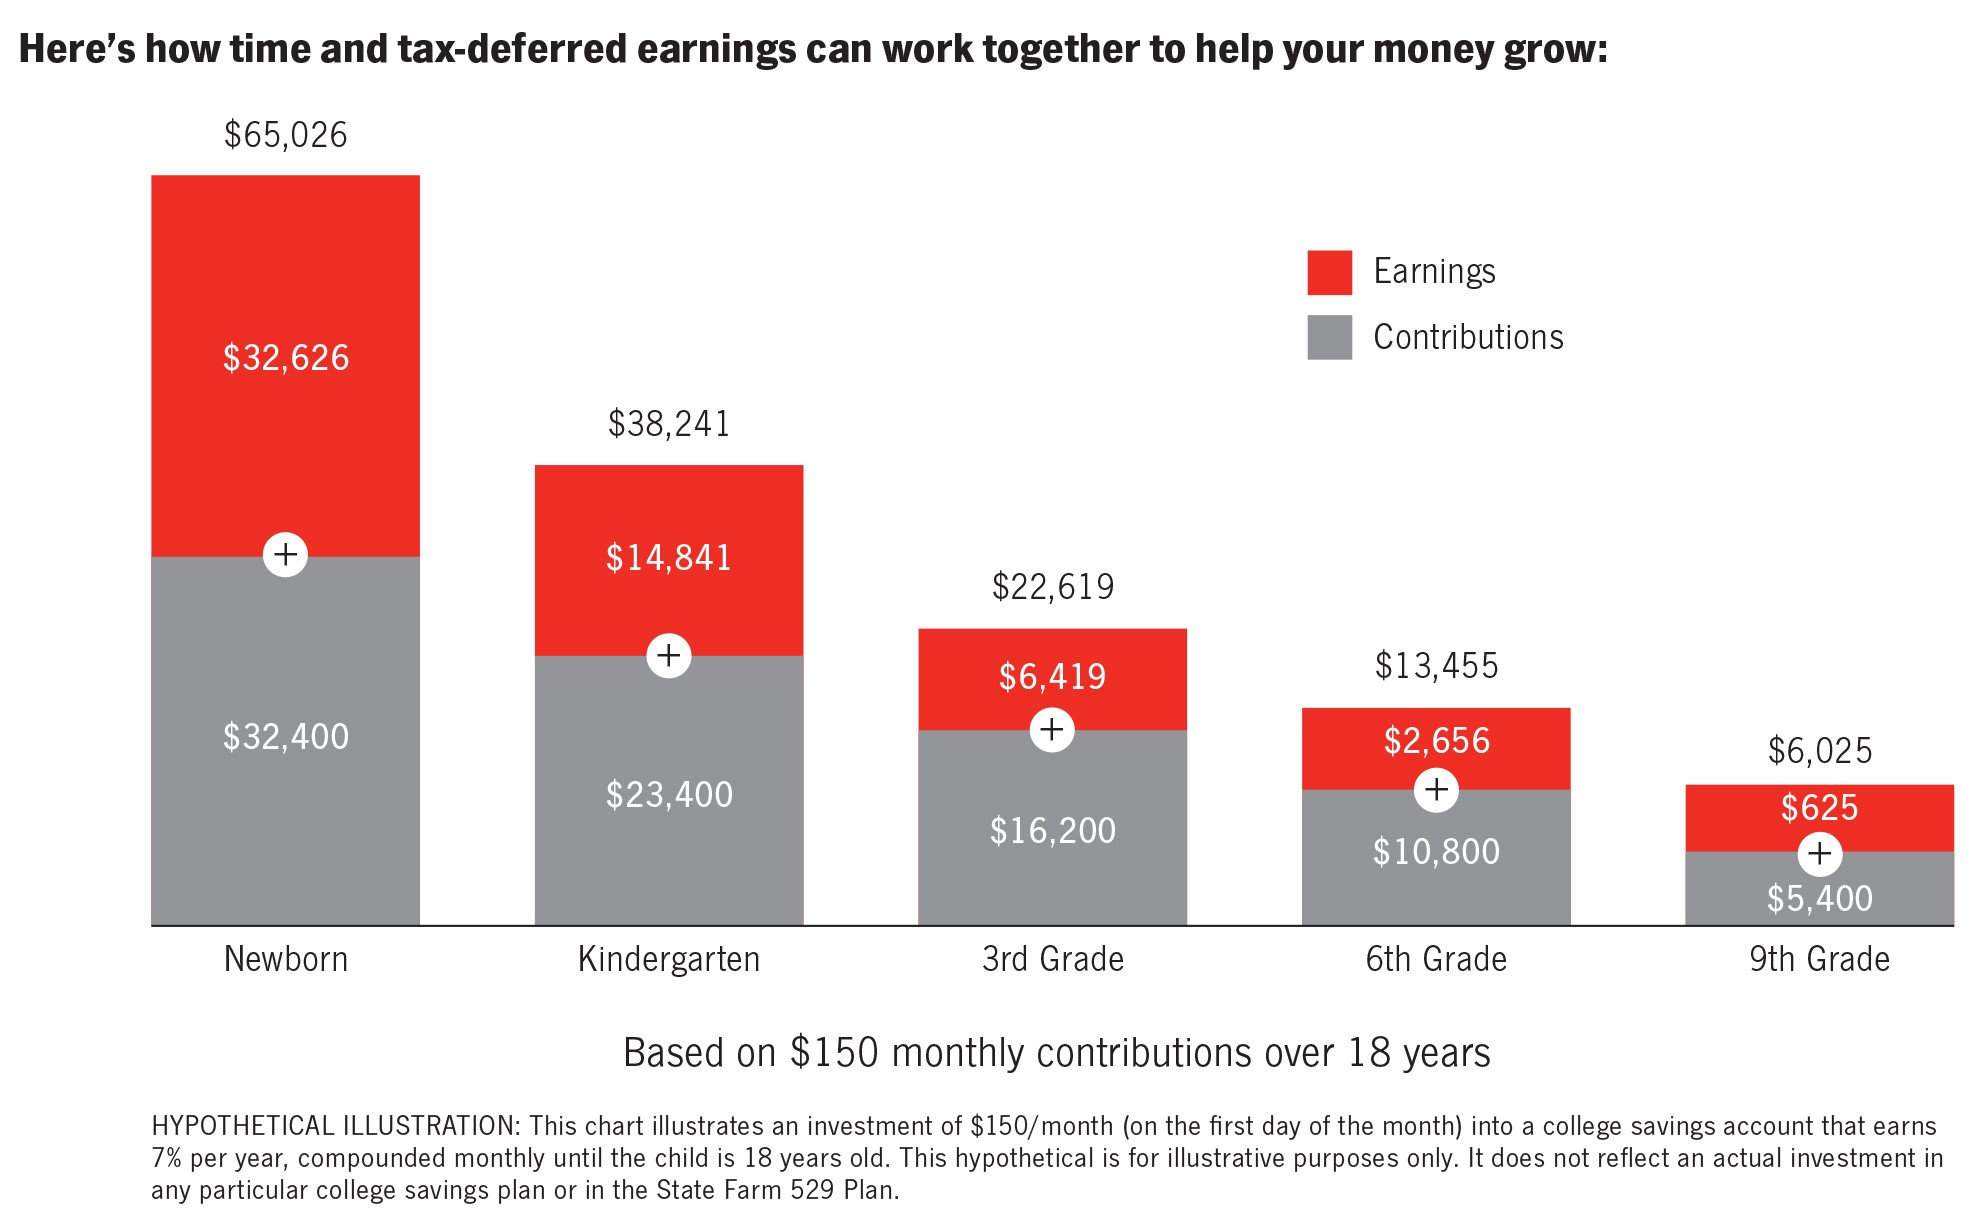 Here's how time and tax-deferred earning can work together to help your money grow: Bar graph illustrating how time and tax-deferred earnings can work together to help your money grow. Graph is based on $150 monthly contributions into a college savings account that earns 7% that is compounded until the child is 18 years old. For a newborn with total contributions of $32,400 will earn $32,626 over time and have a total of $65,026 in the college savings account by the time the child is 18. For a child in kindergarten with total contributions of $23,400 will earn $14,841 over time and have a total of $38,241 by the time the child is 18. For a child in 3rd grade with total contributions of $16,200 will earn $6,419 over time and have a total of $22,619 by the time the child is 18. For a child in 6th grade with total contributions of $10,800 will earn $2,656 over time and have a total of $13,455 by the time the child is 18. For a child in 9th grade with total contributions of $5,400 will earn $625 over time and have a total of $6,025. Hypothetical Illustration; This chart illustrates an investment of $150/month (on the first day of the month) into a college savings account that earns 7% per year, compounded monthly until the child is 18 years old. This hypothetical is for illustrative purposes only.  it does not reflect an actual investment in any particular college savings plan or in the State Farm 529 Plan.